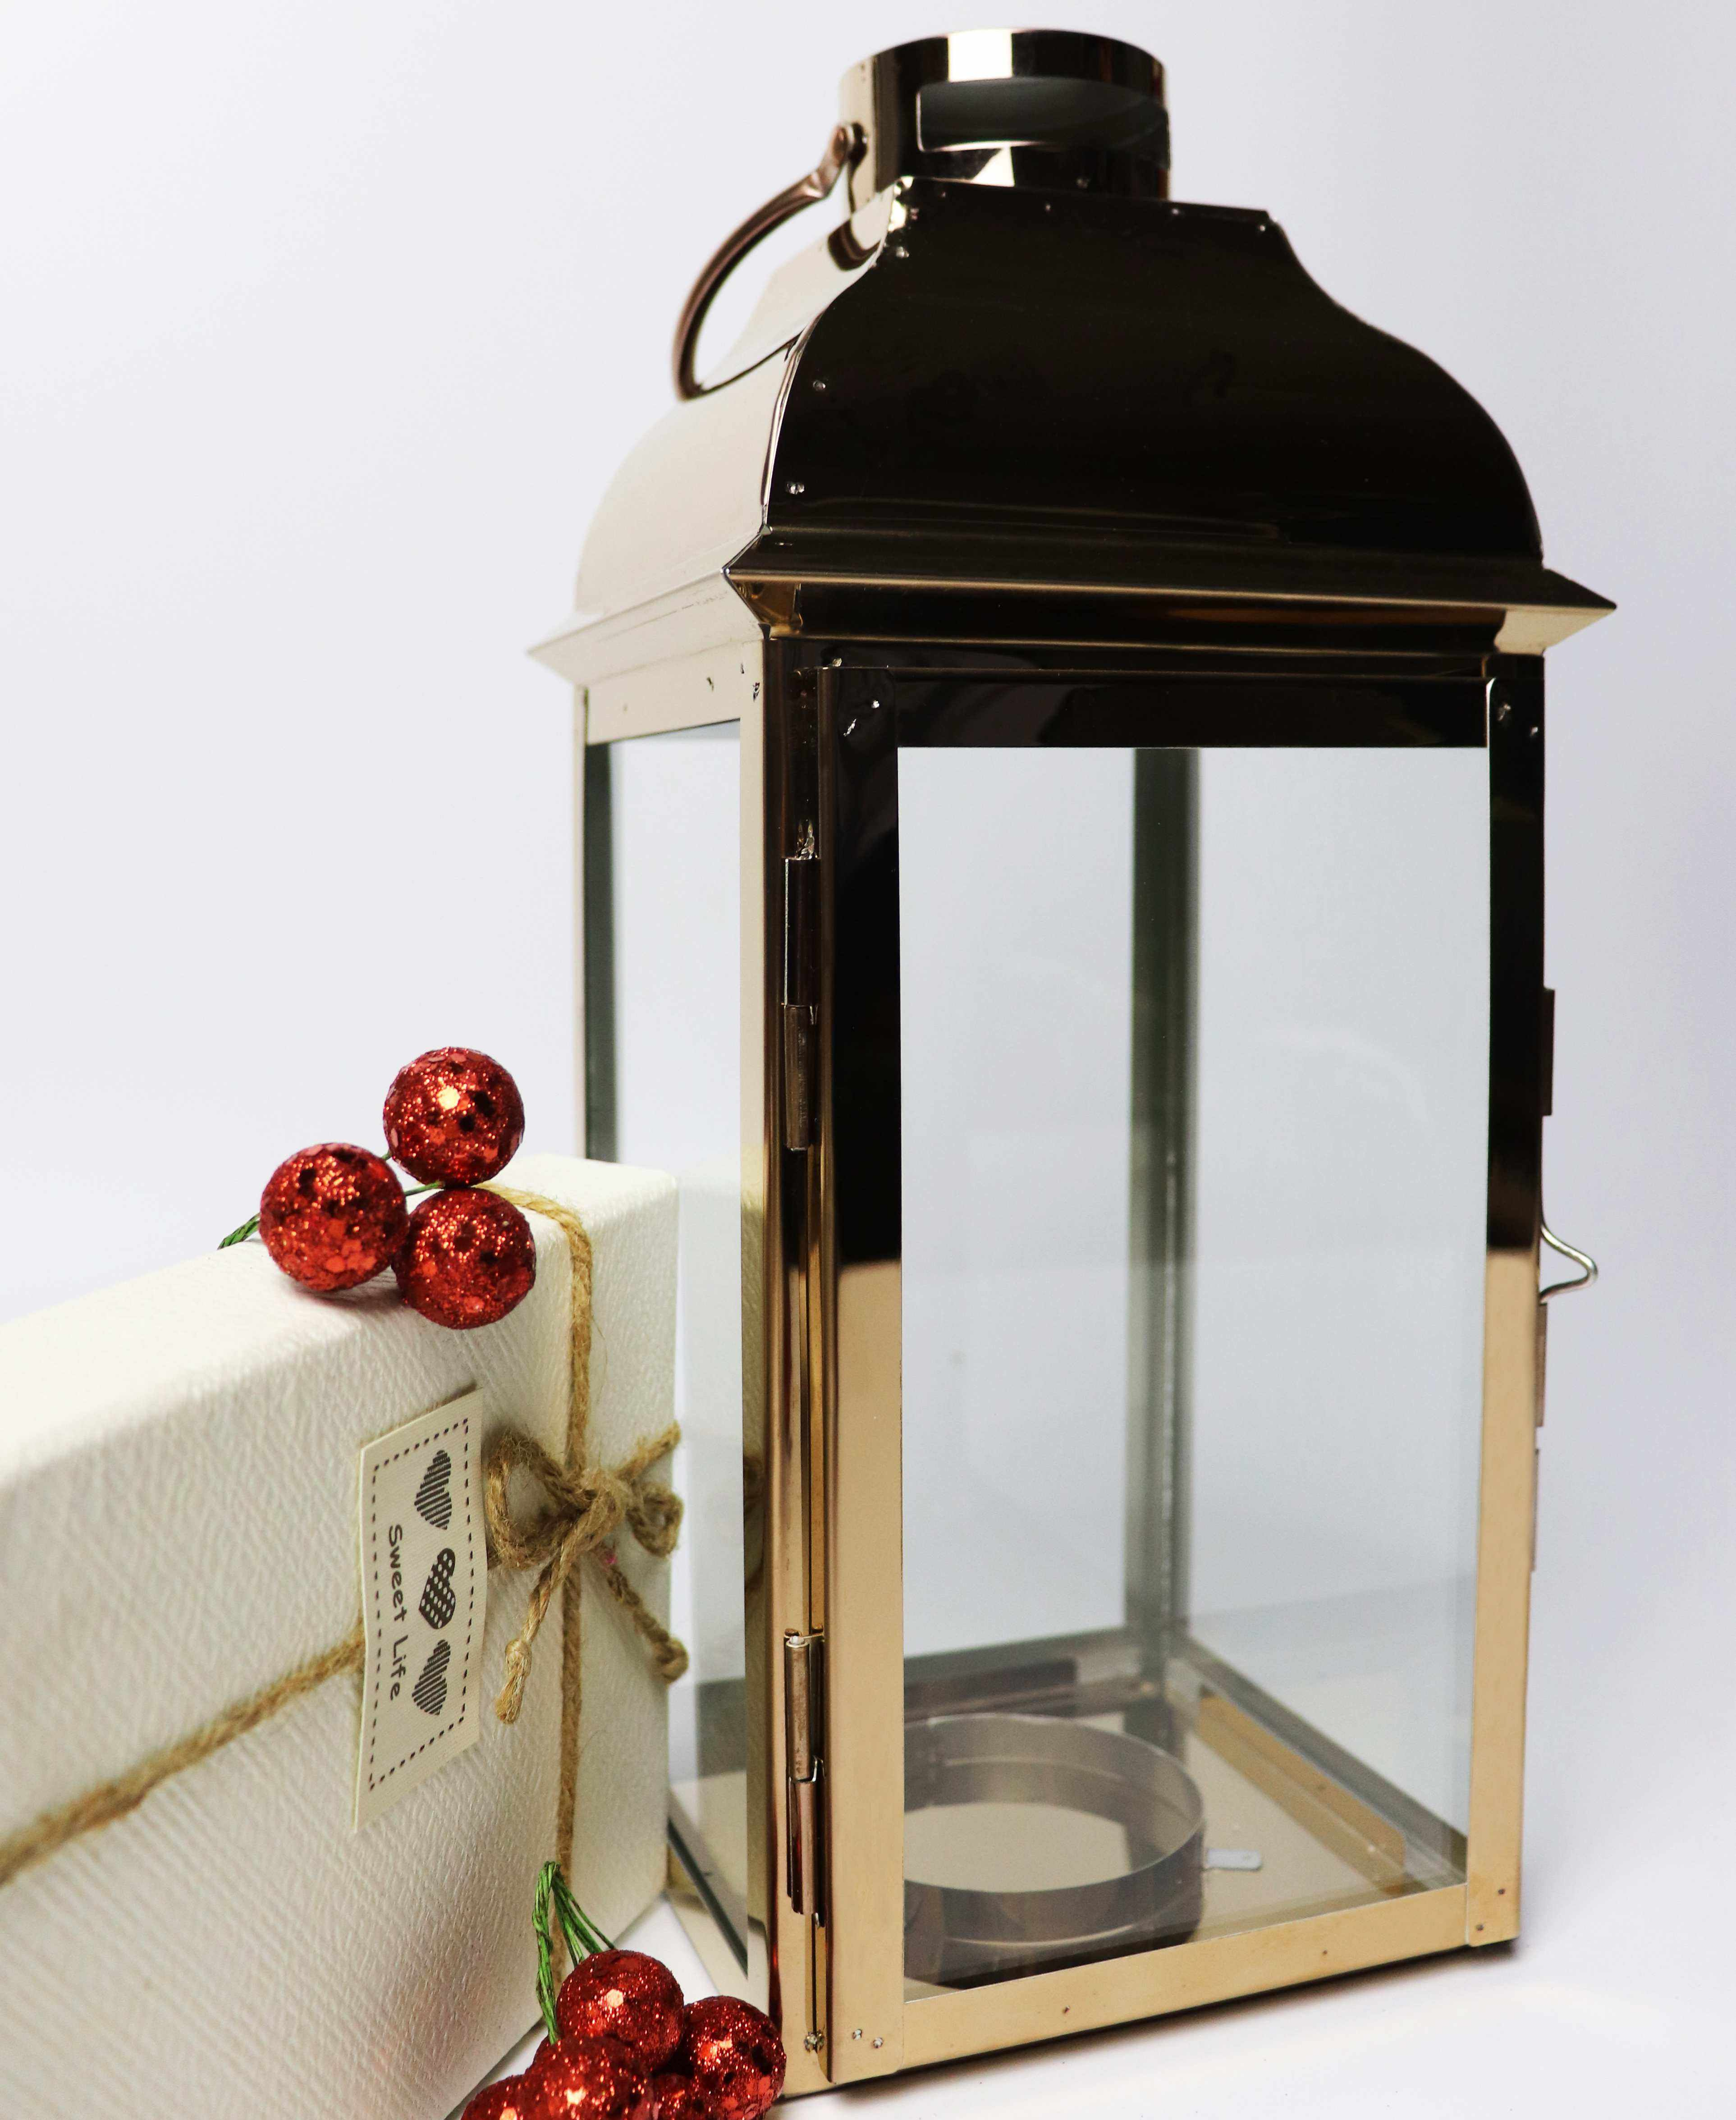 New product Golden stainless steel hurricane lantern christmas candle lantern grave